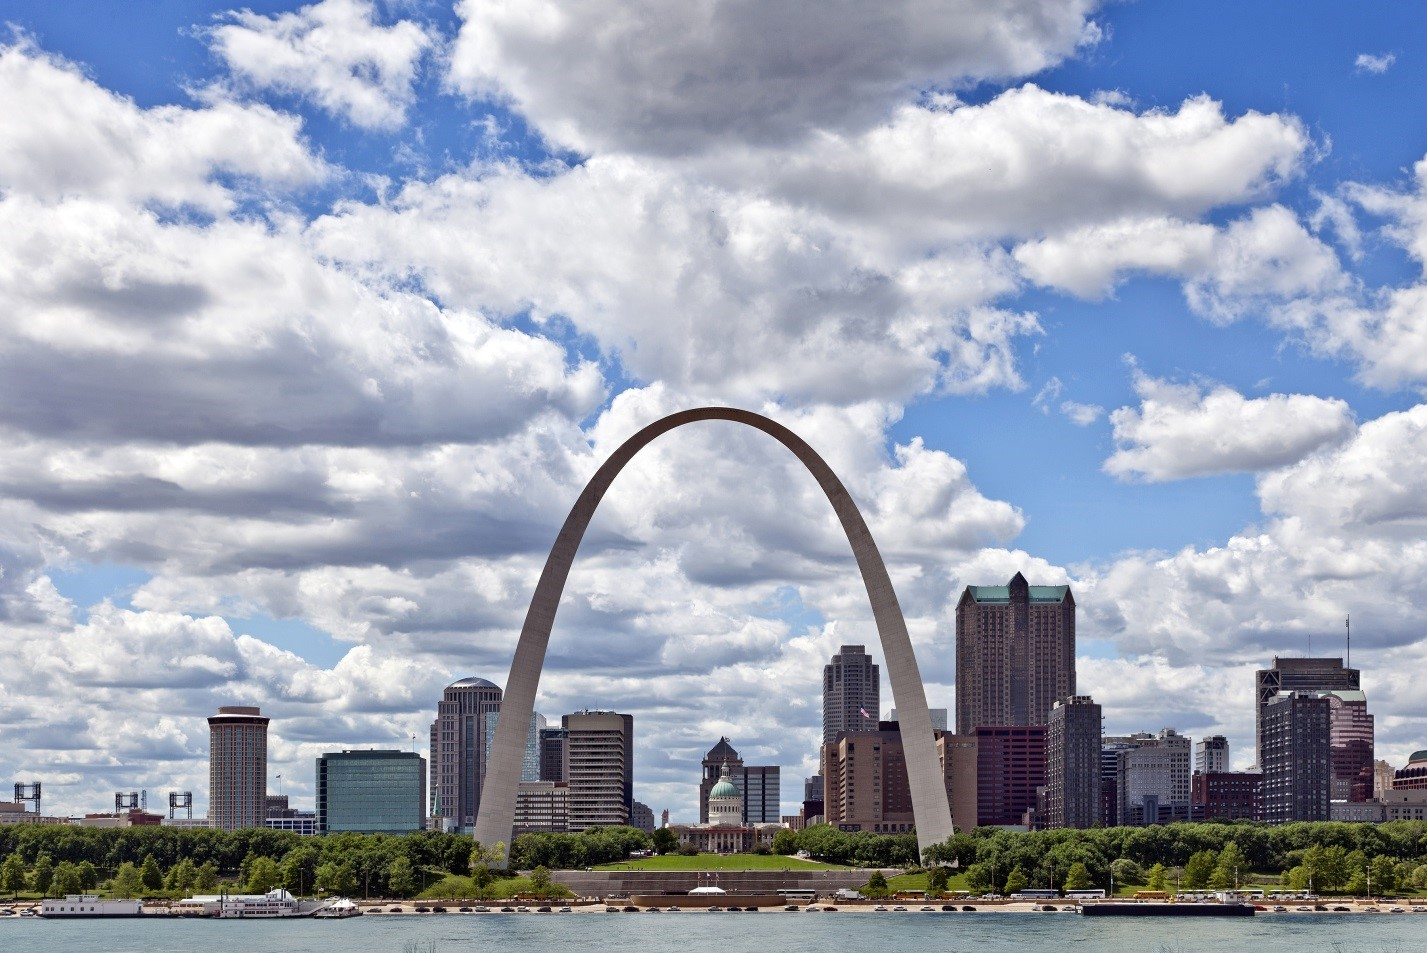 St. Louis: A growing city with hidden potential for startups